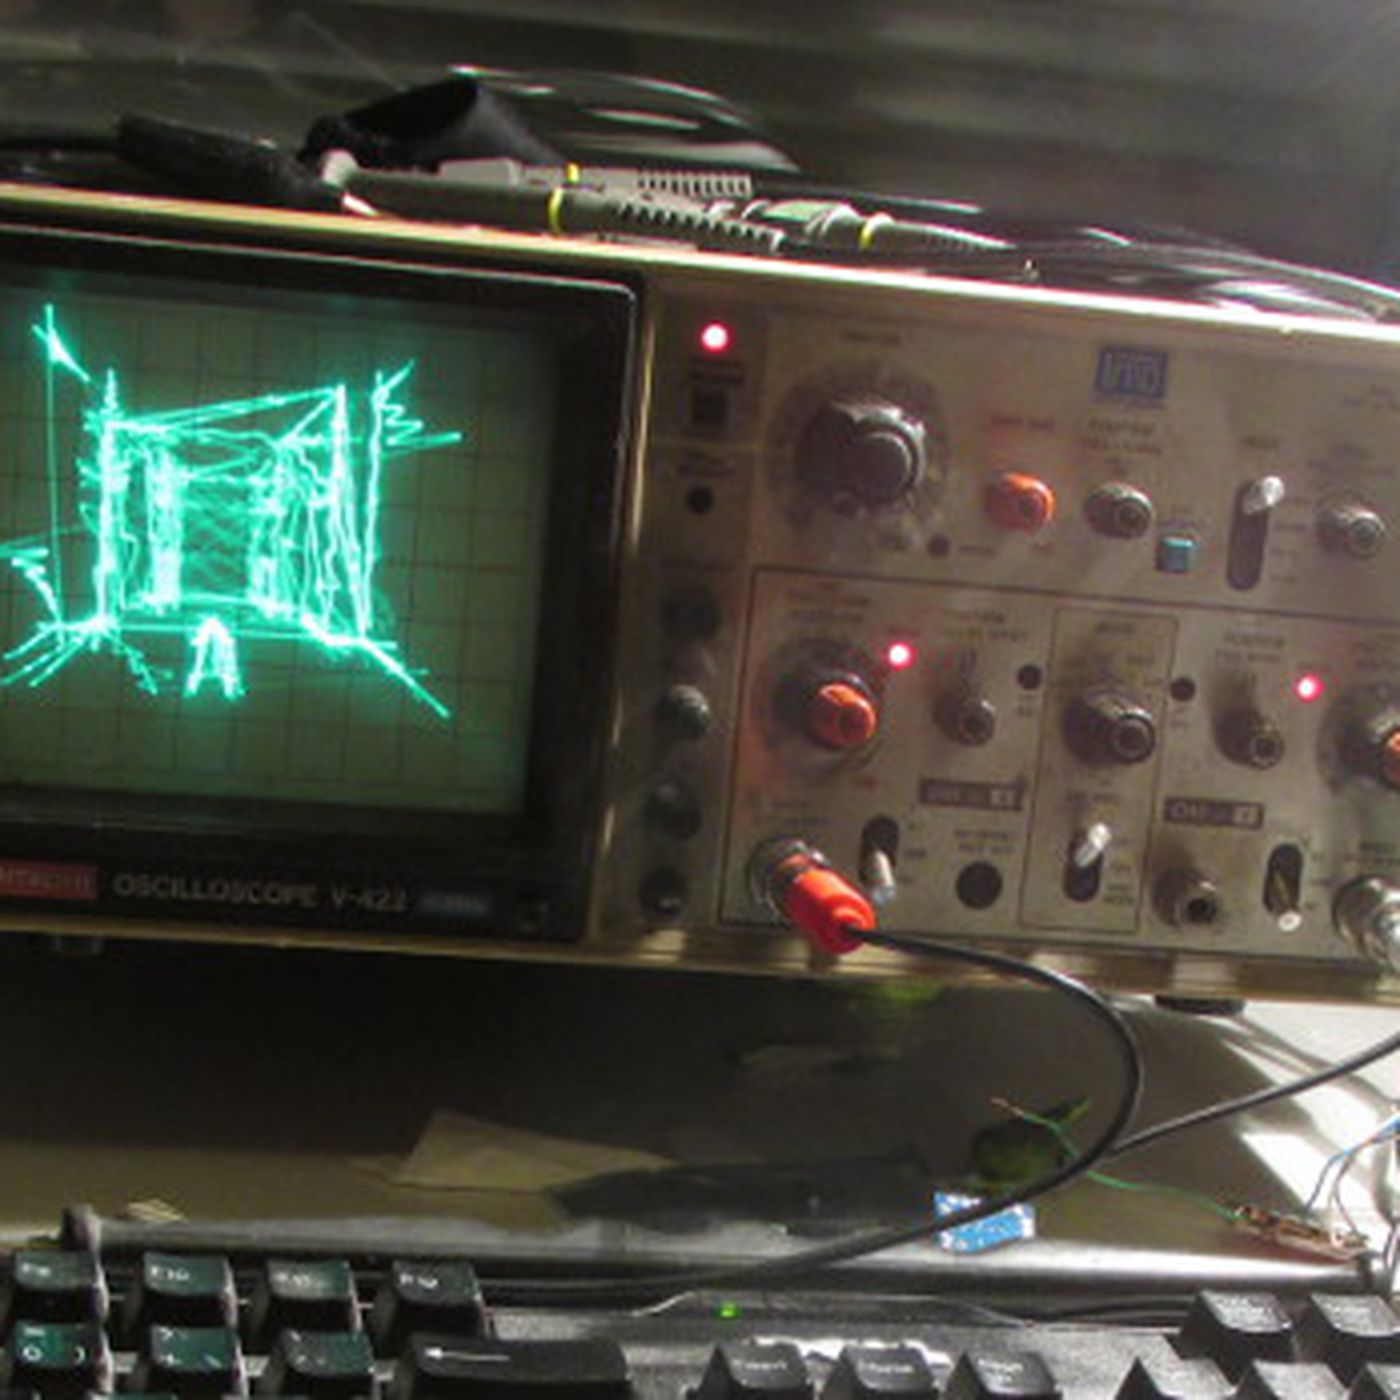 Quake running on an oscilloscope is the ultimate demake - The Verge